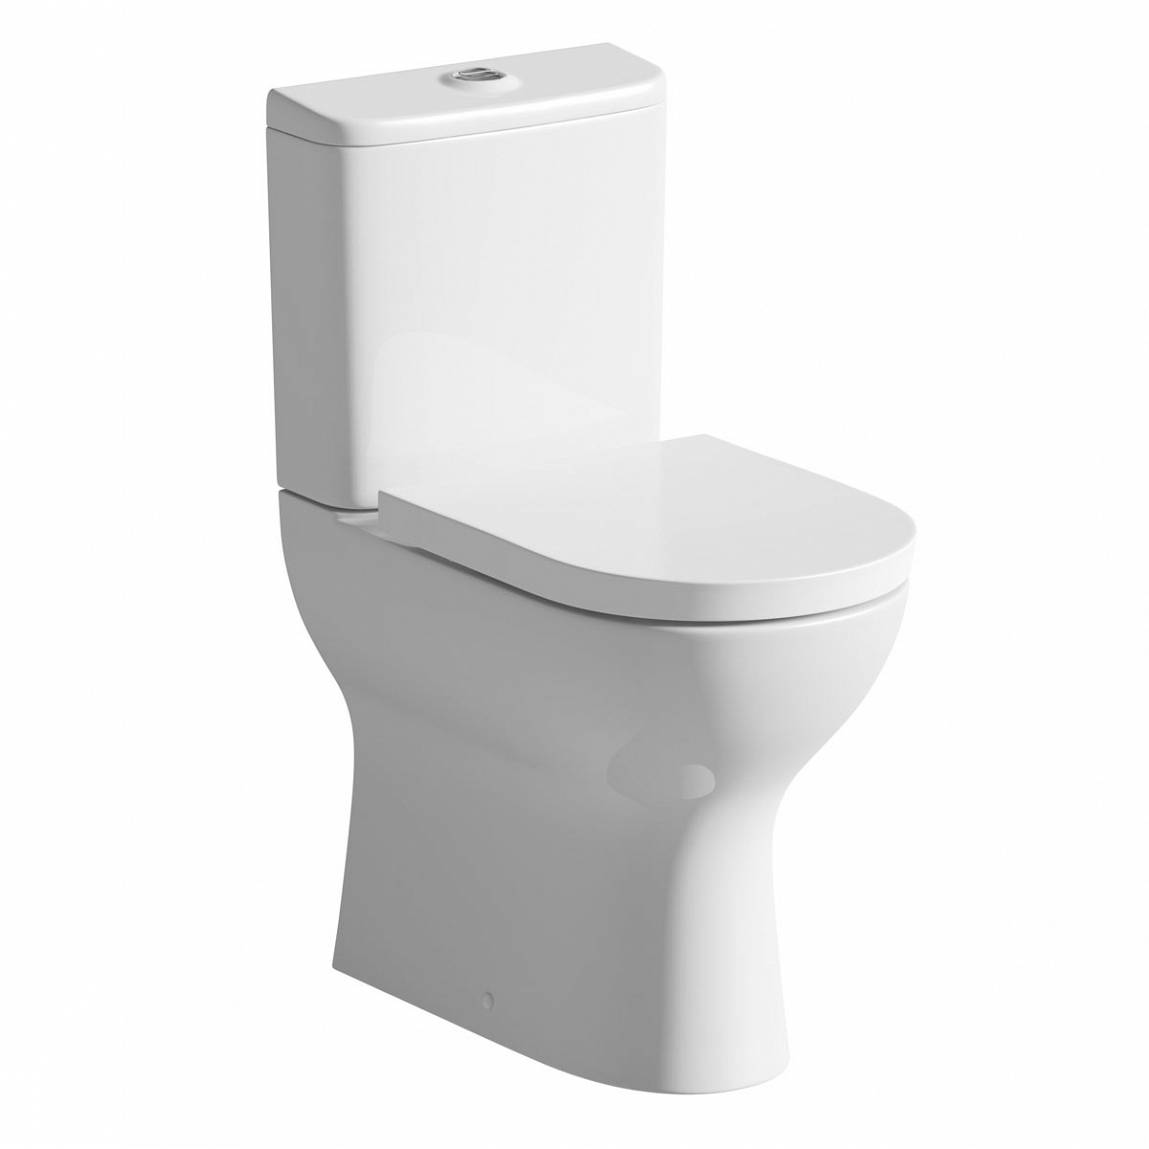 Image of Fairbanks Raised Height Close Coupled Toilet inc. Luxury Soft Close Seat